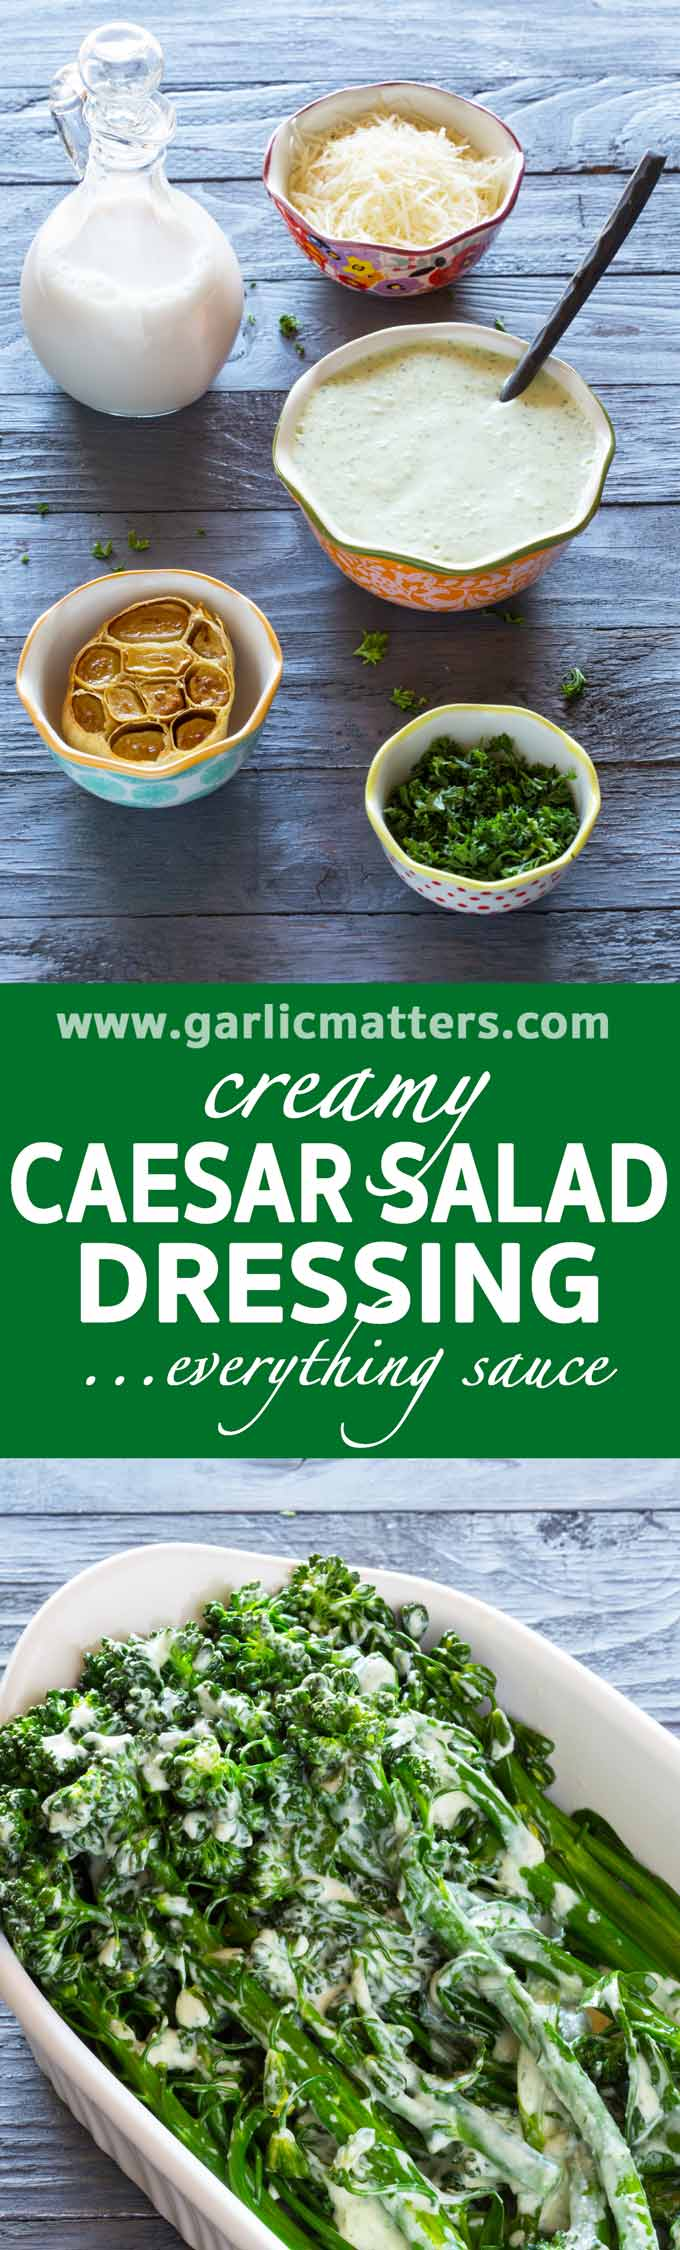 Creamy Caesar Salad Dressing Everything Sauce is perfect also with pizza, burgers, tacos, any fresh or steamed veggie salad - delish!